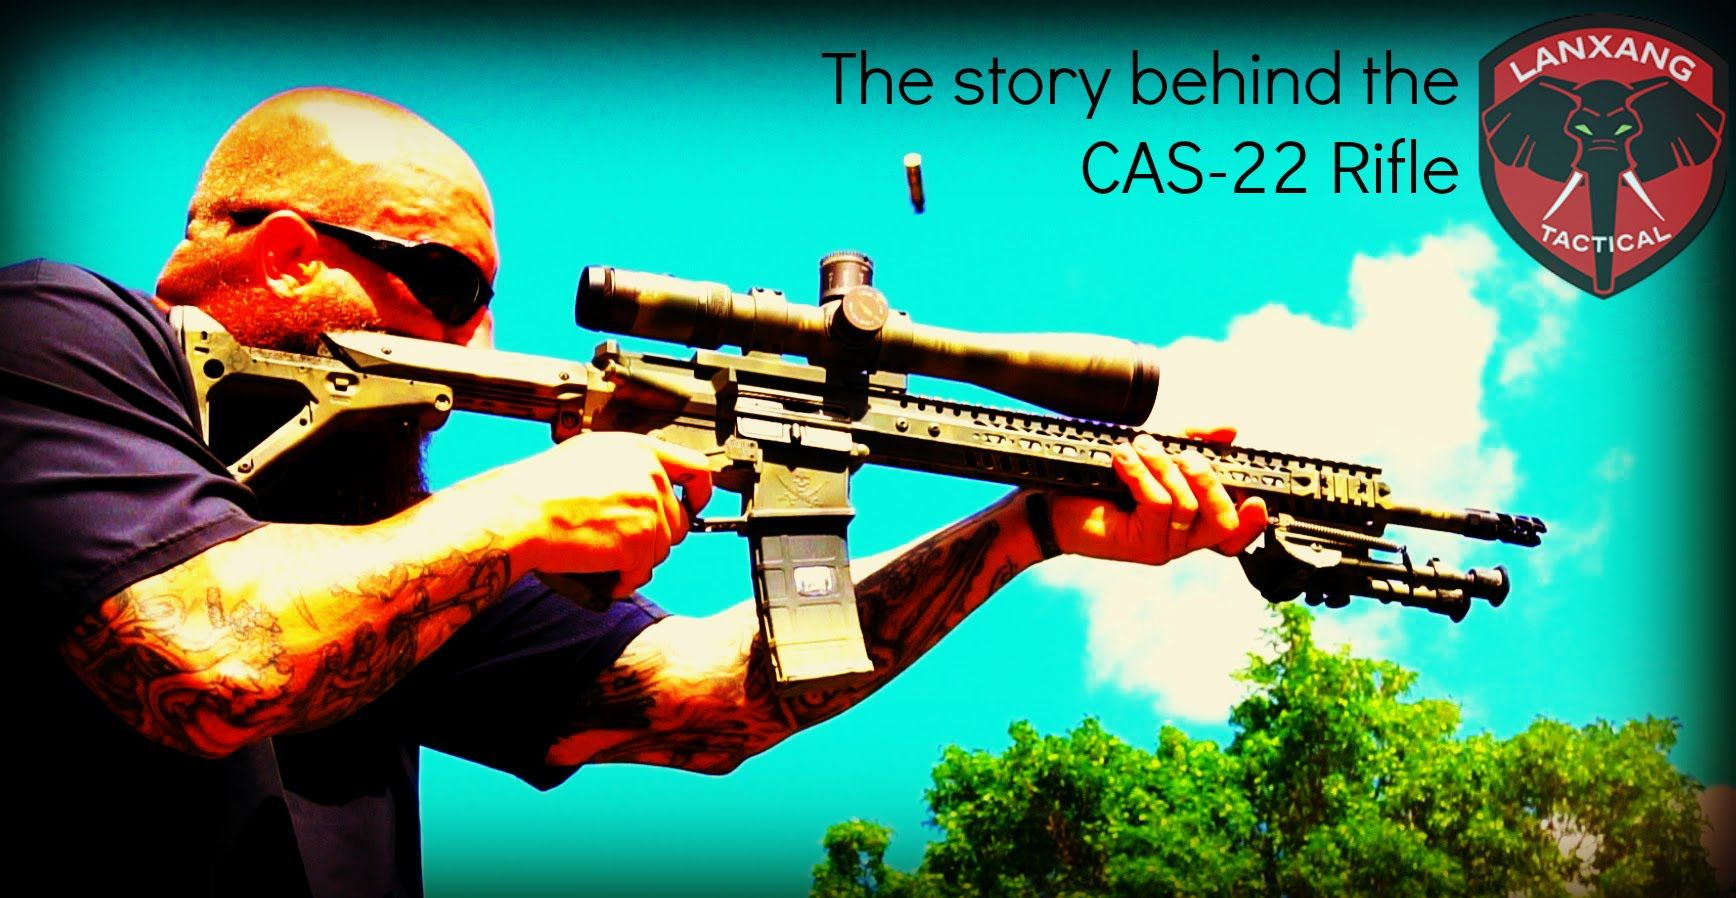 1 Year later: The story behind the CAS-22 Rifle from Lanxang Tactical